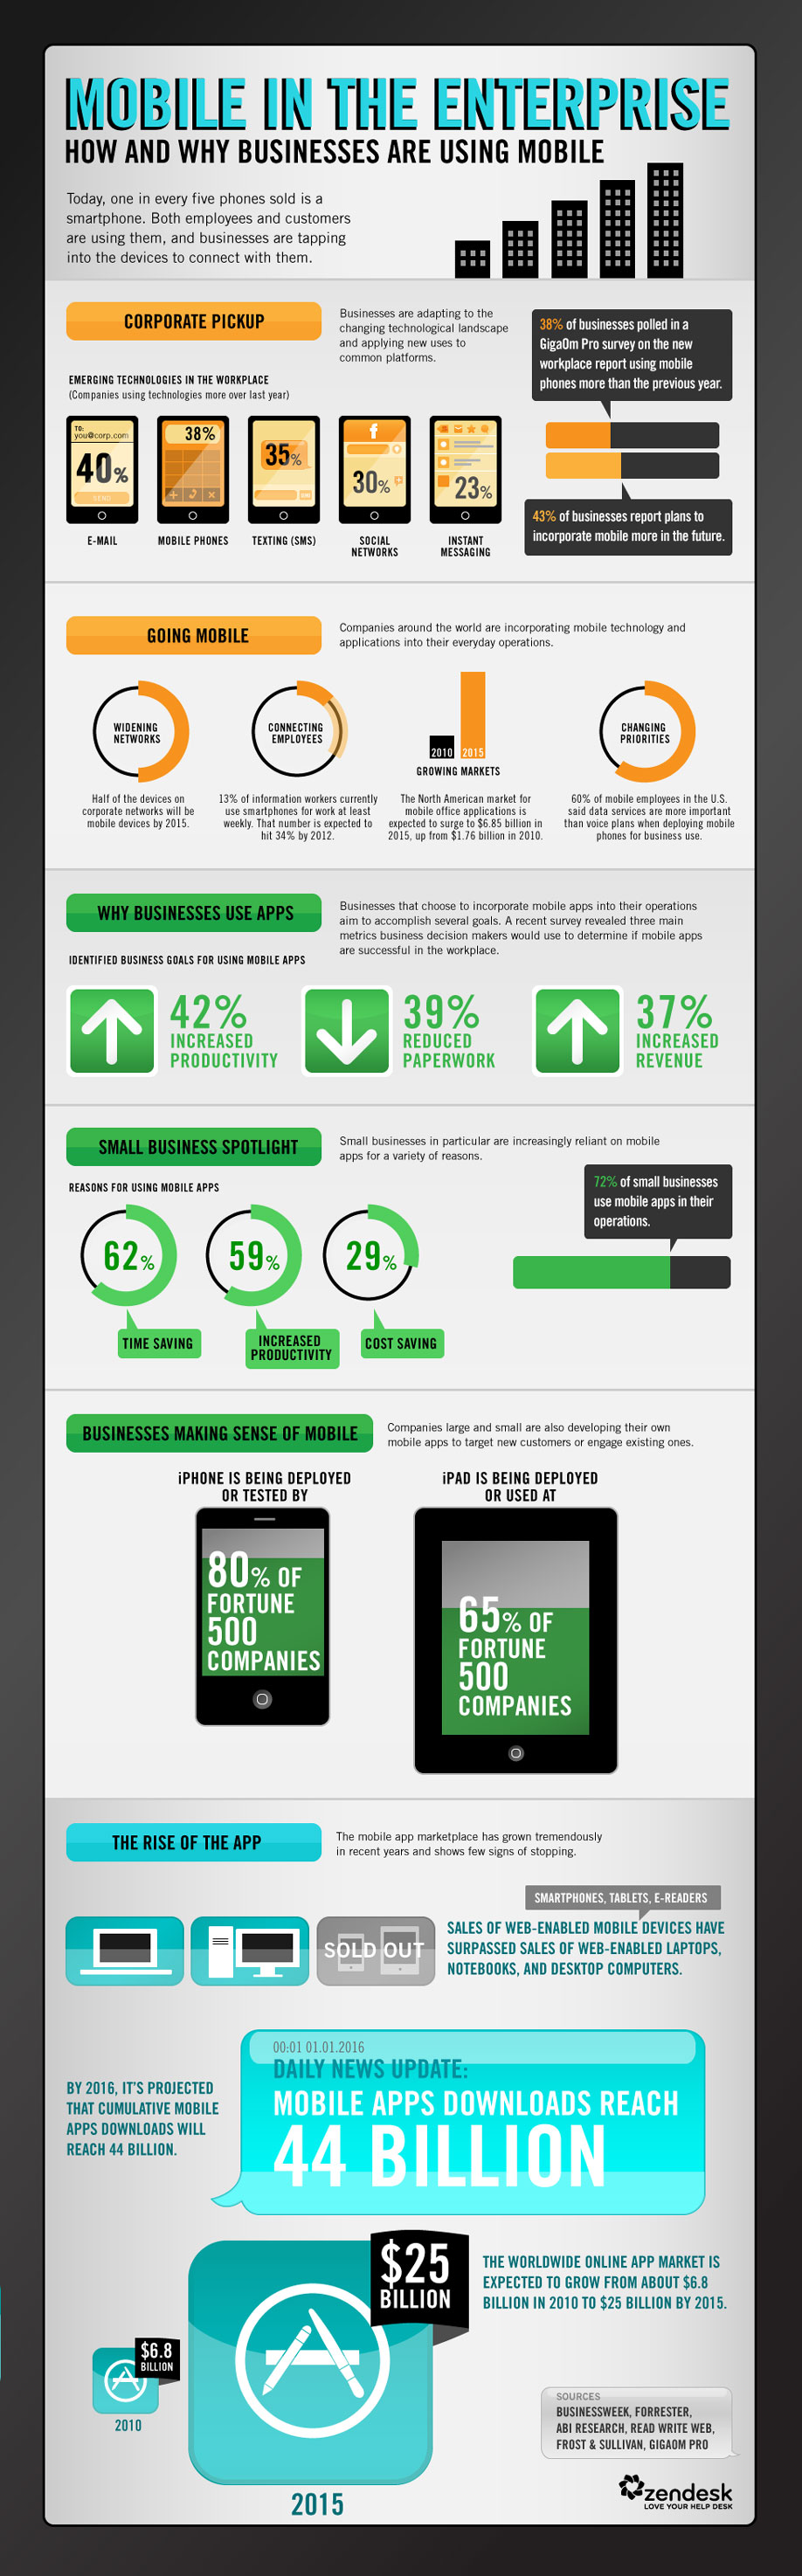 Mobile In The Enterprise — How And Why Businesses Are Using Mobile